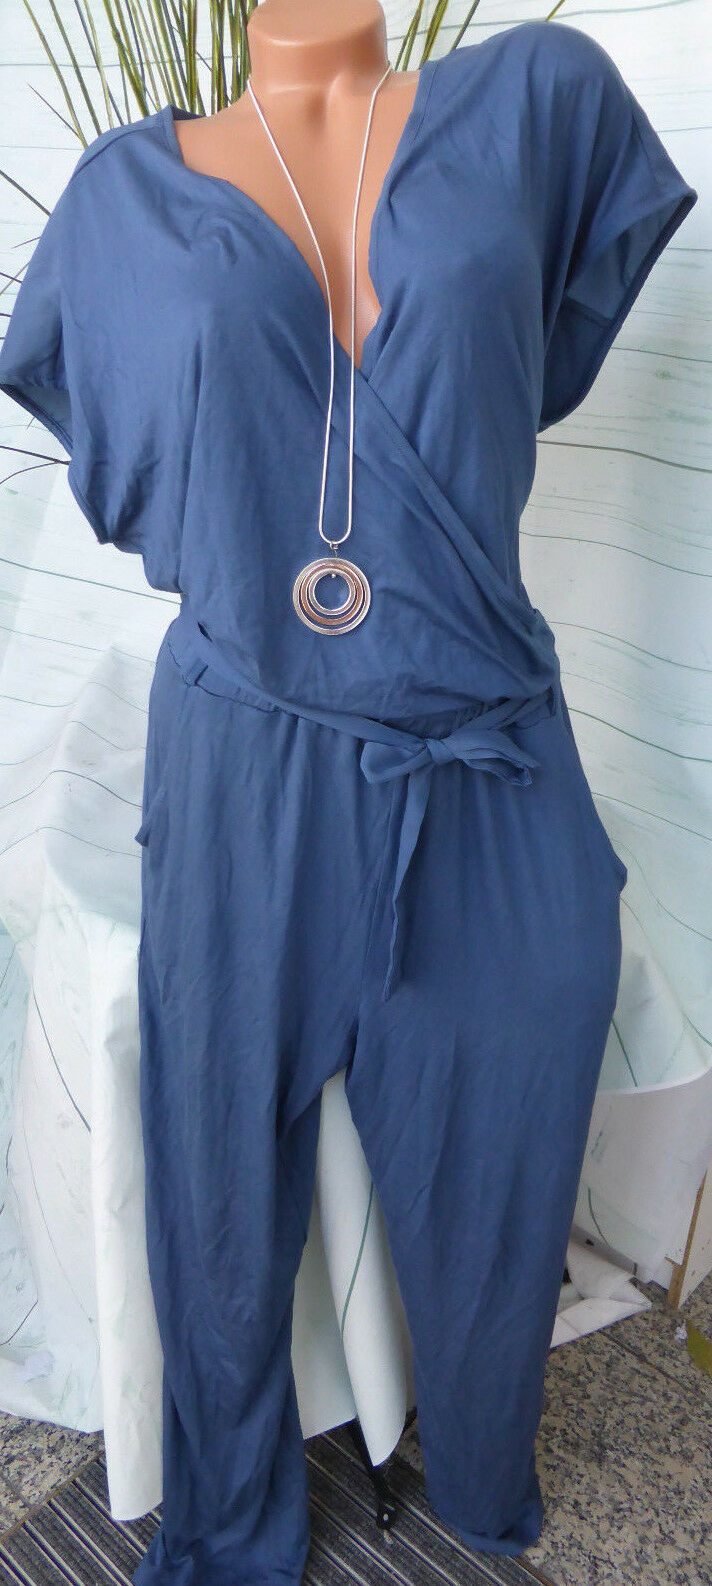 Sheego Jumpsuit Suit Size 44 and 58 bluee Tone plus Size (369)